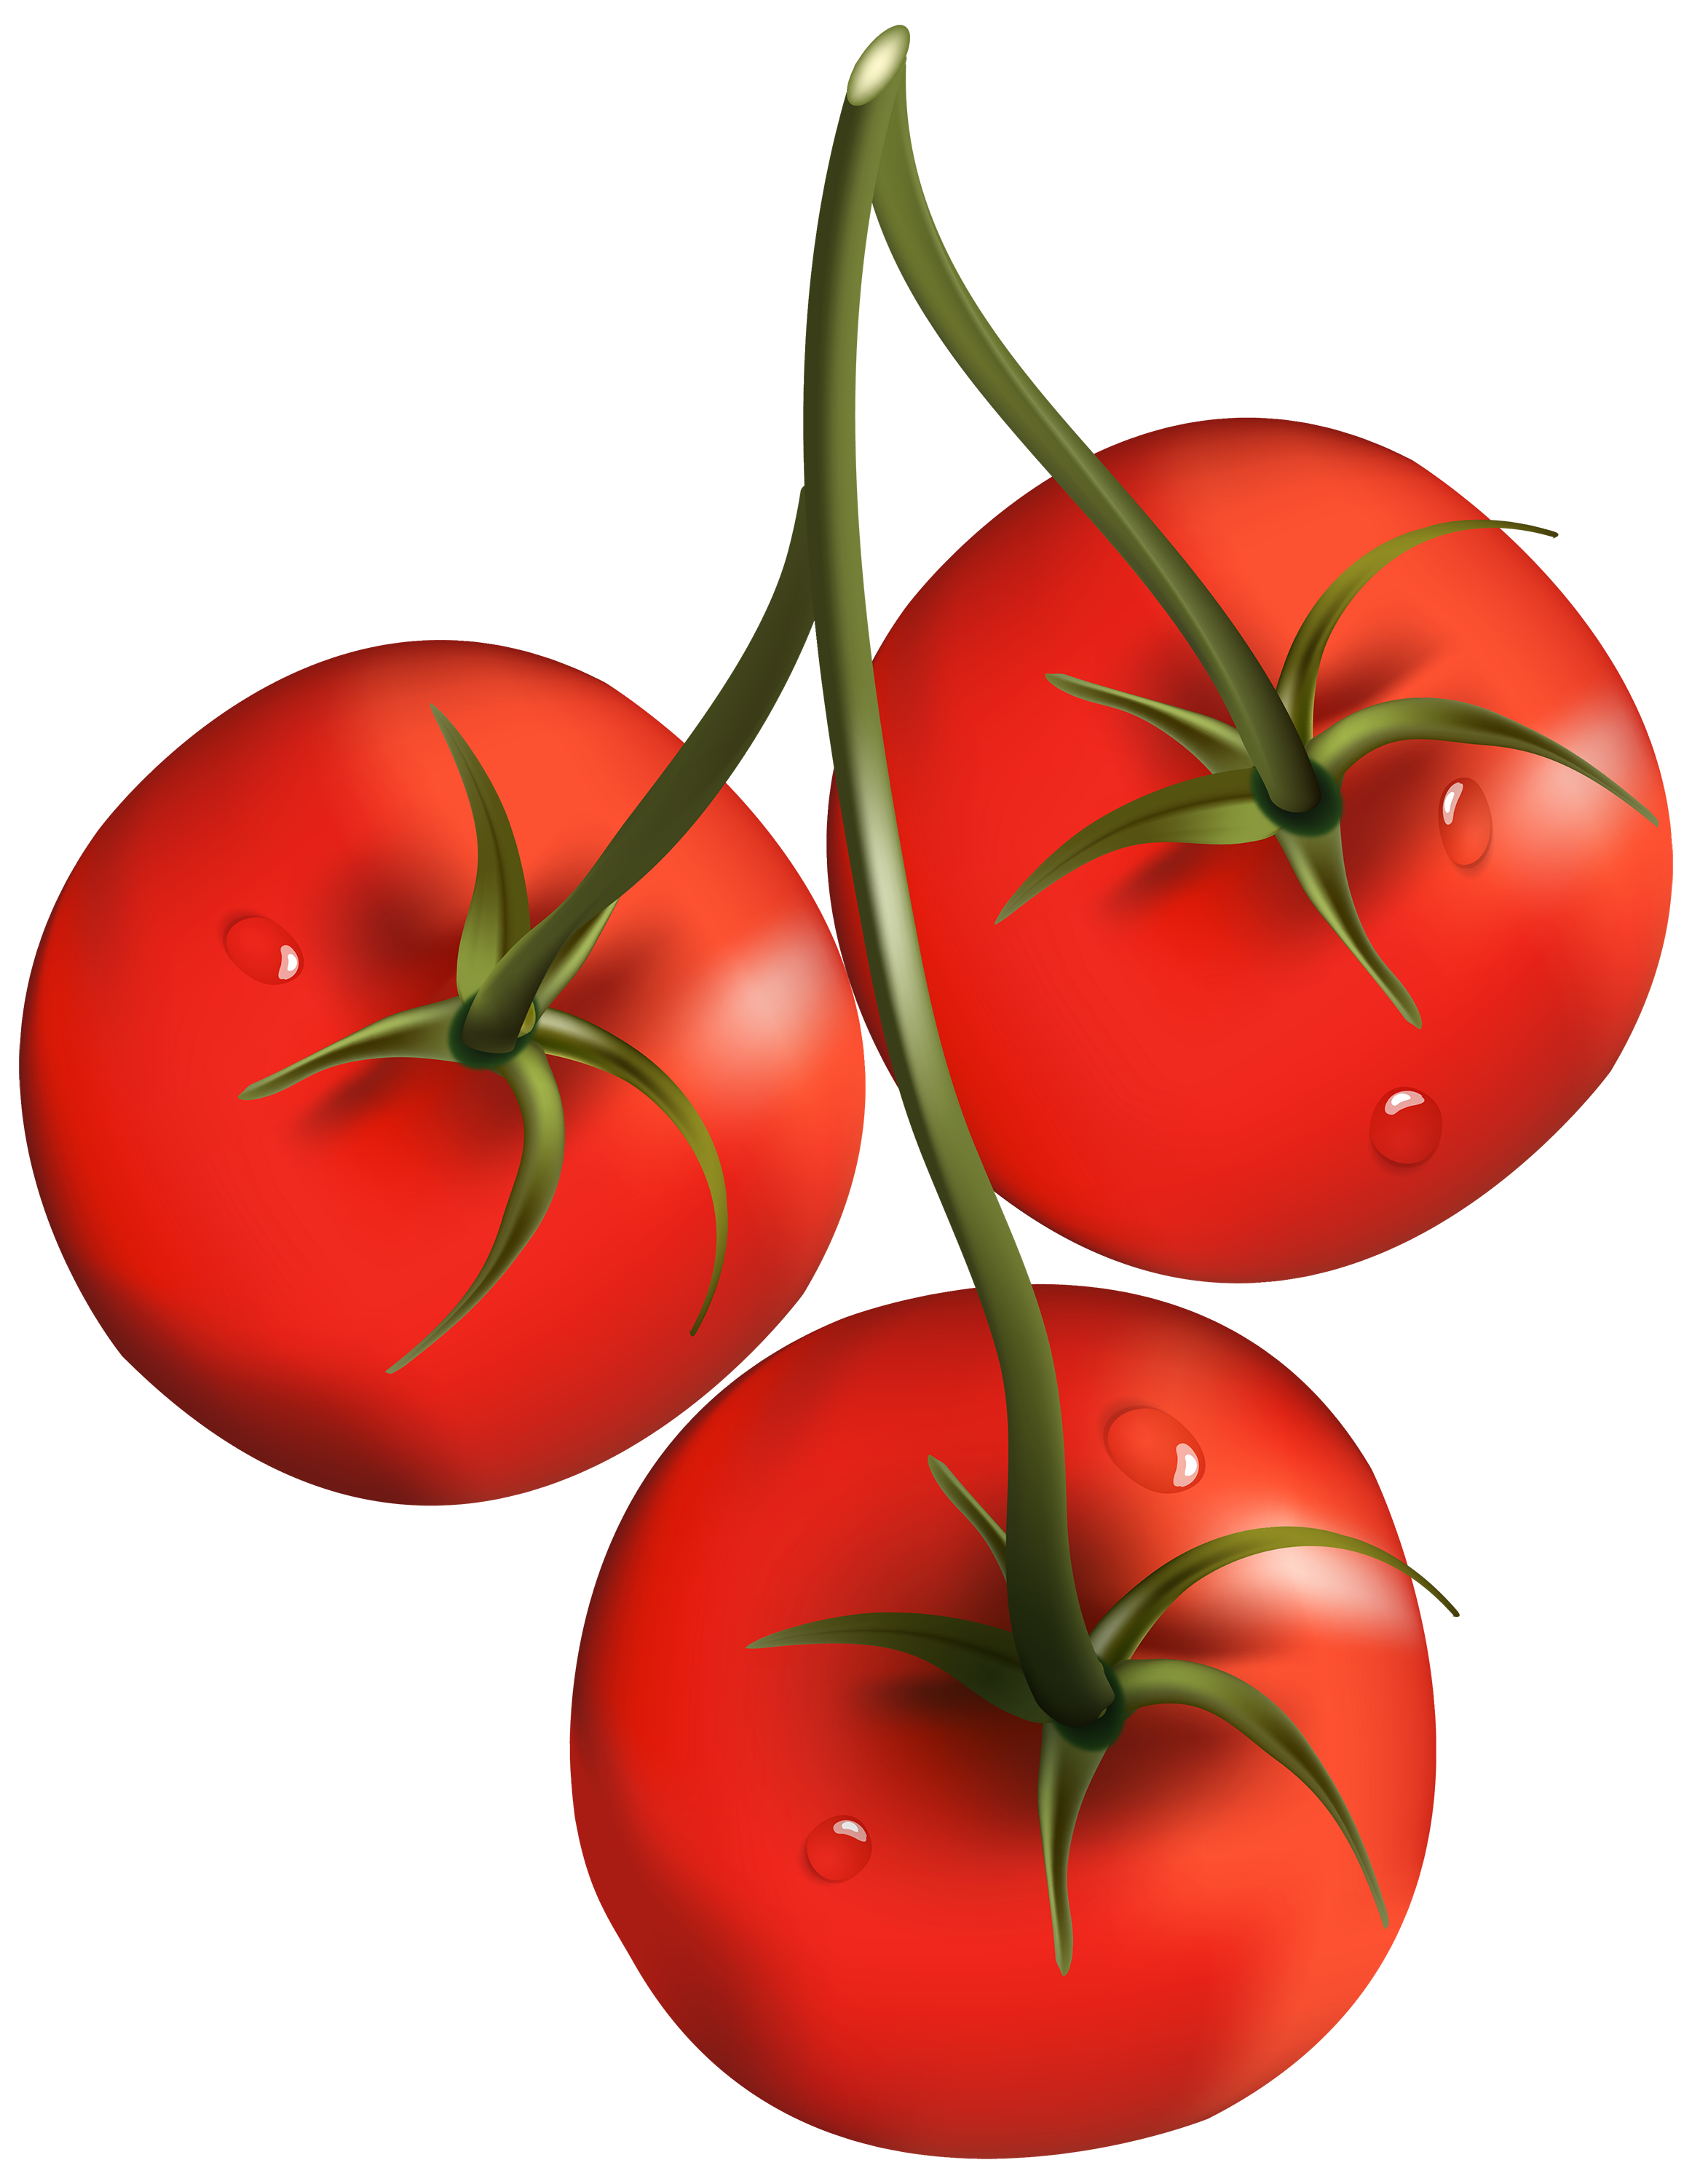 Eye clipart tomato. Png images free download